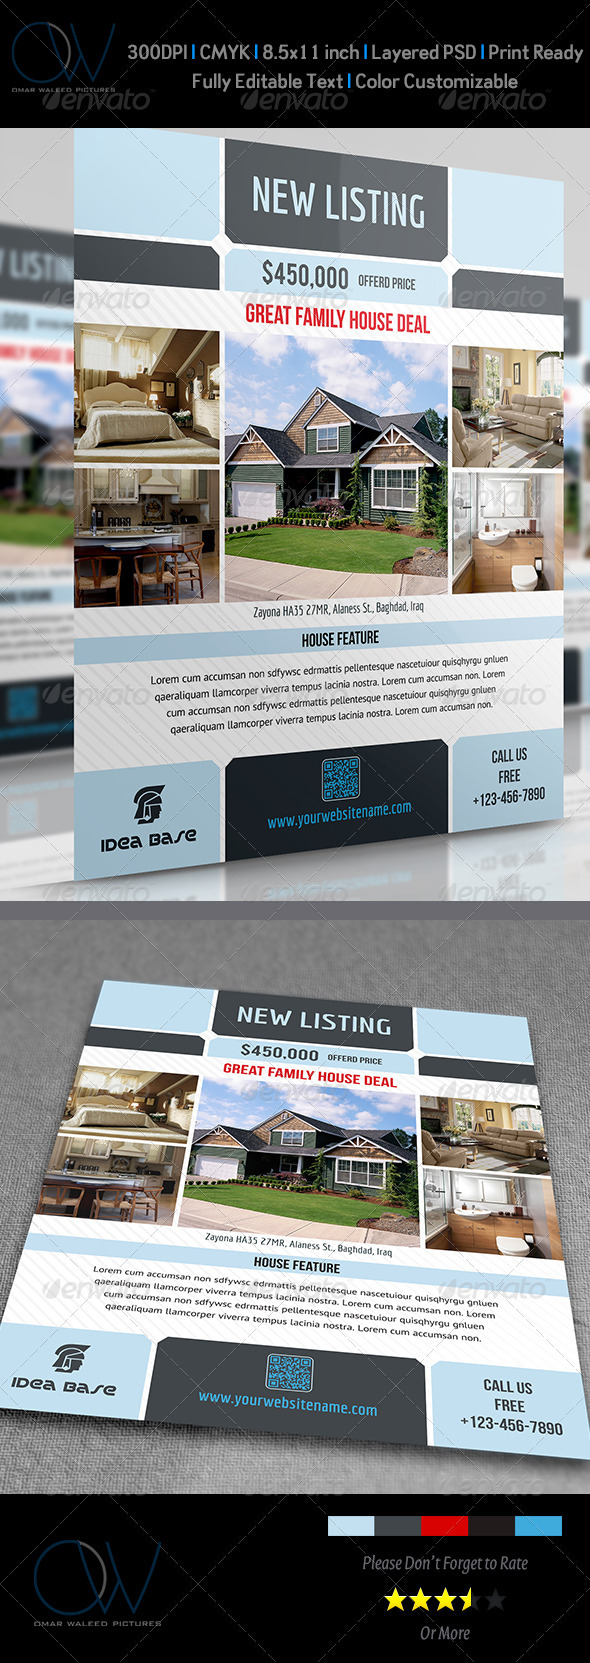 Real Estate Flyer Vol.3 - Commerce Flyers